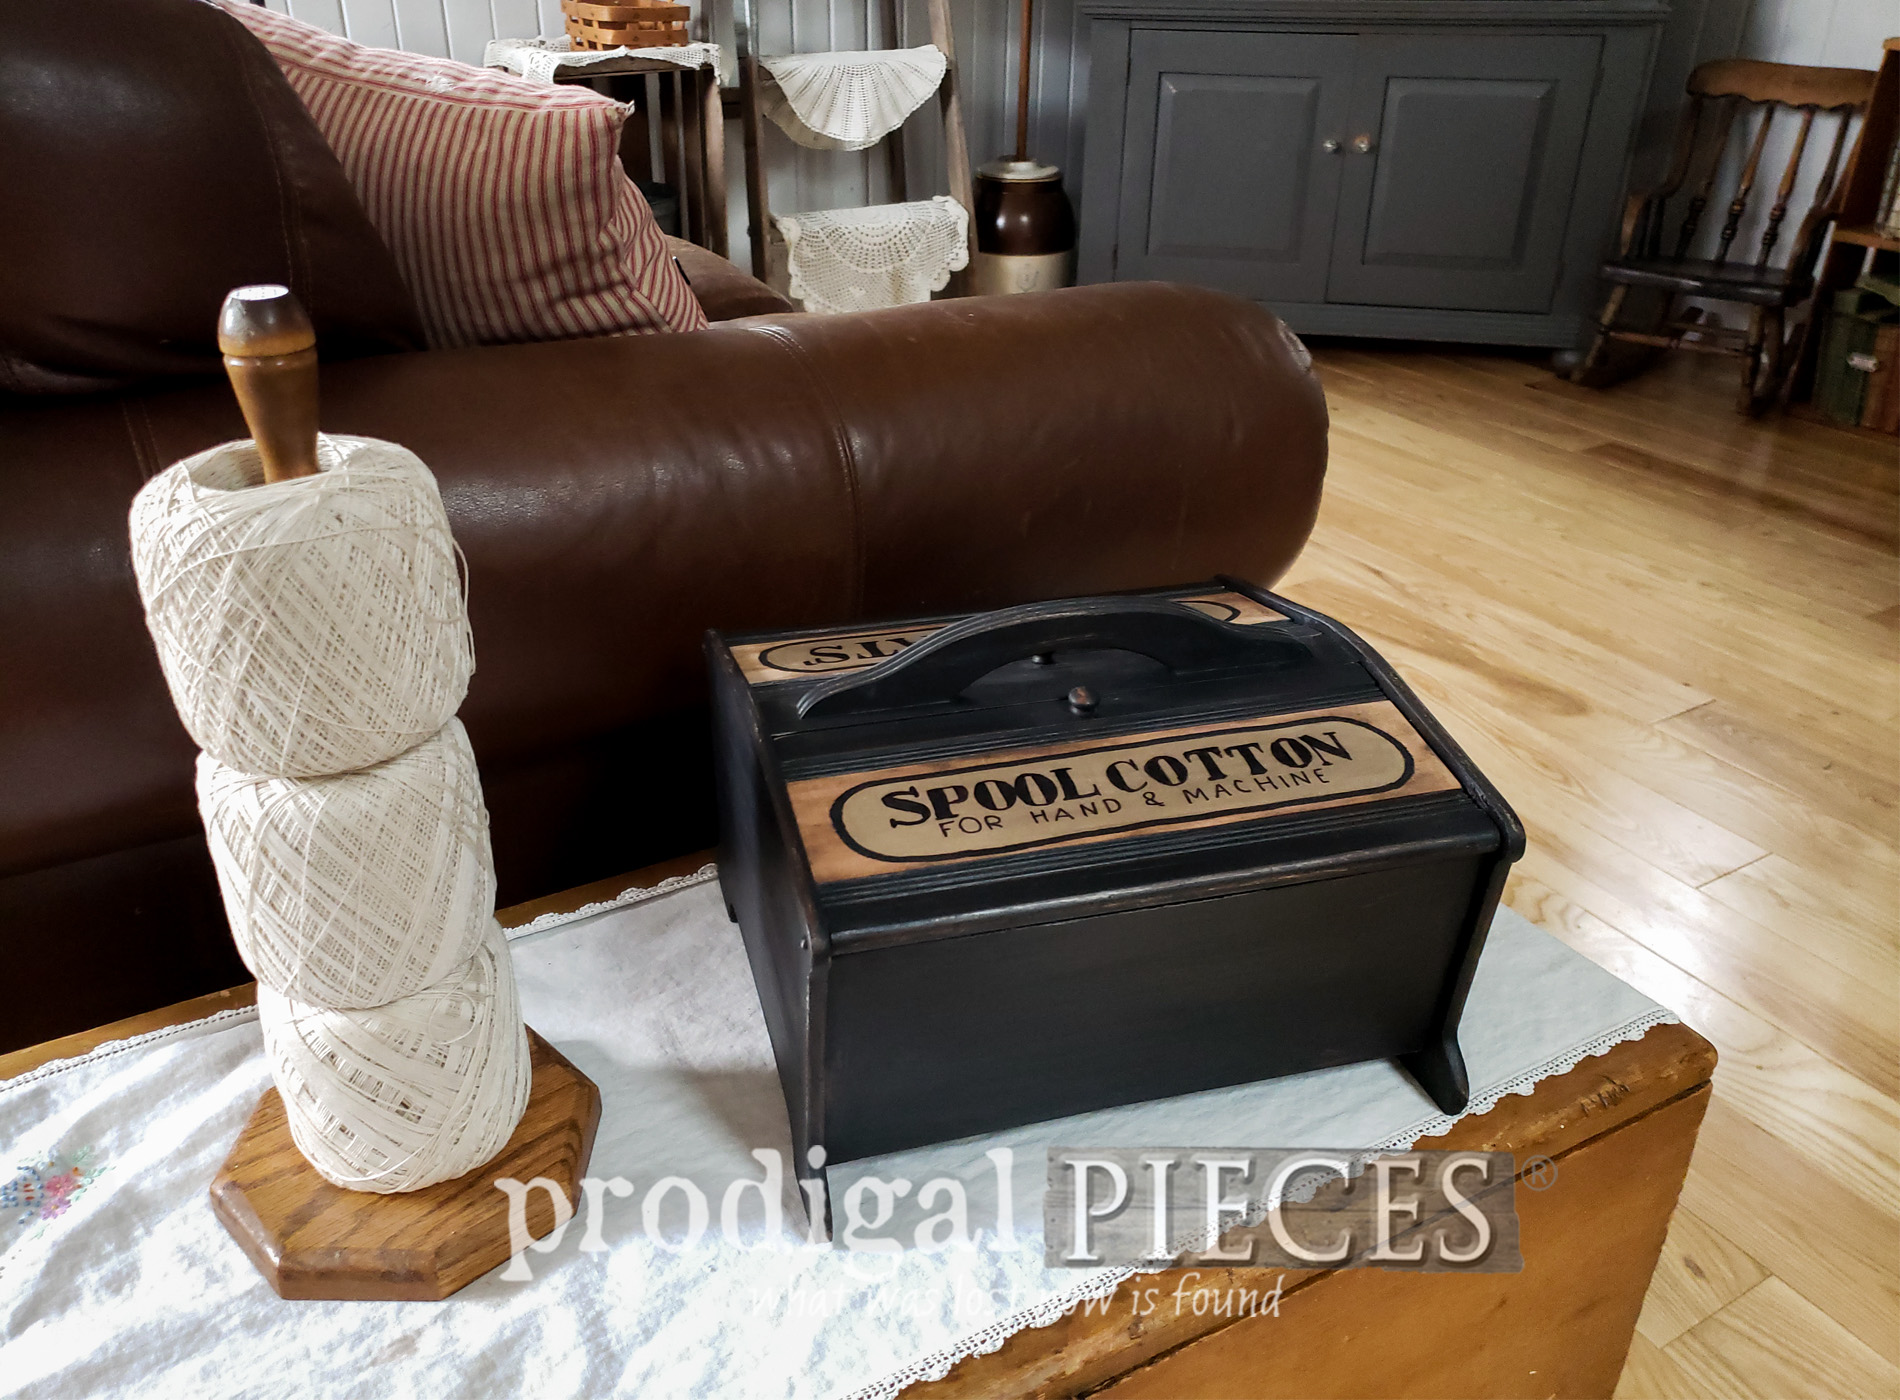 Vintage Sewing Box into Upcycled Remote Control Holder with video tutorial by Larissa of Prodigal Pieces | prodigalpieces.com #prodigalpieces #farmhouse #upcycled #home #homedecor #diy #storage